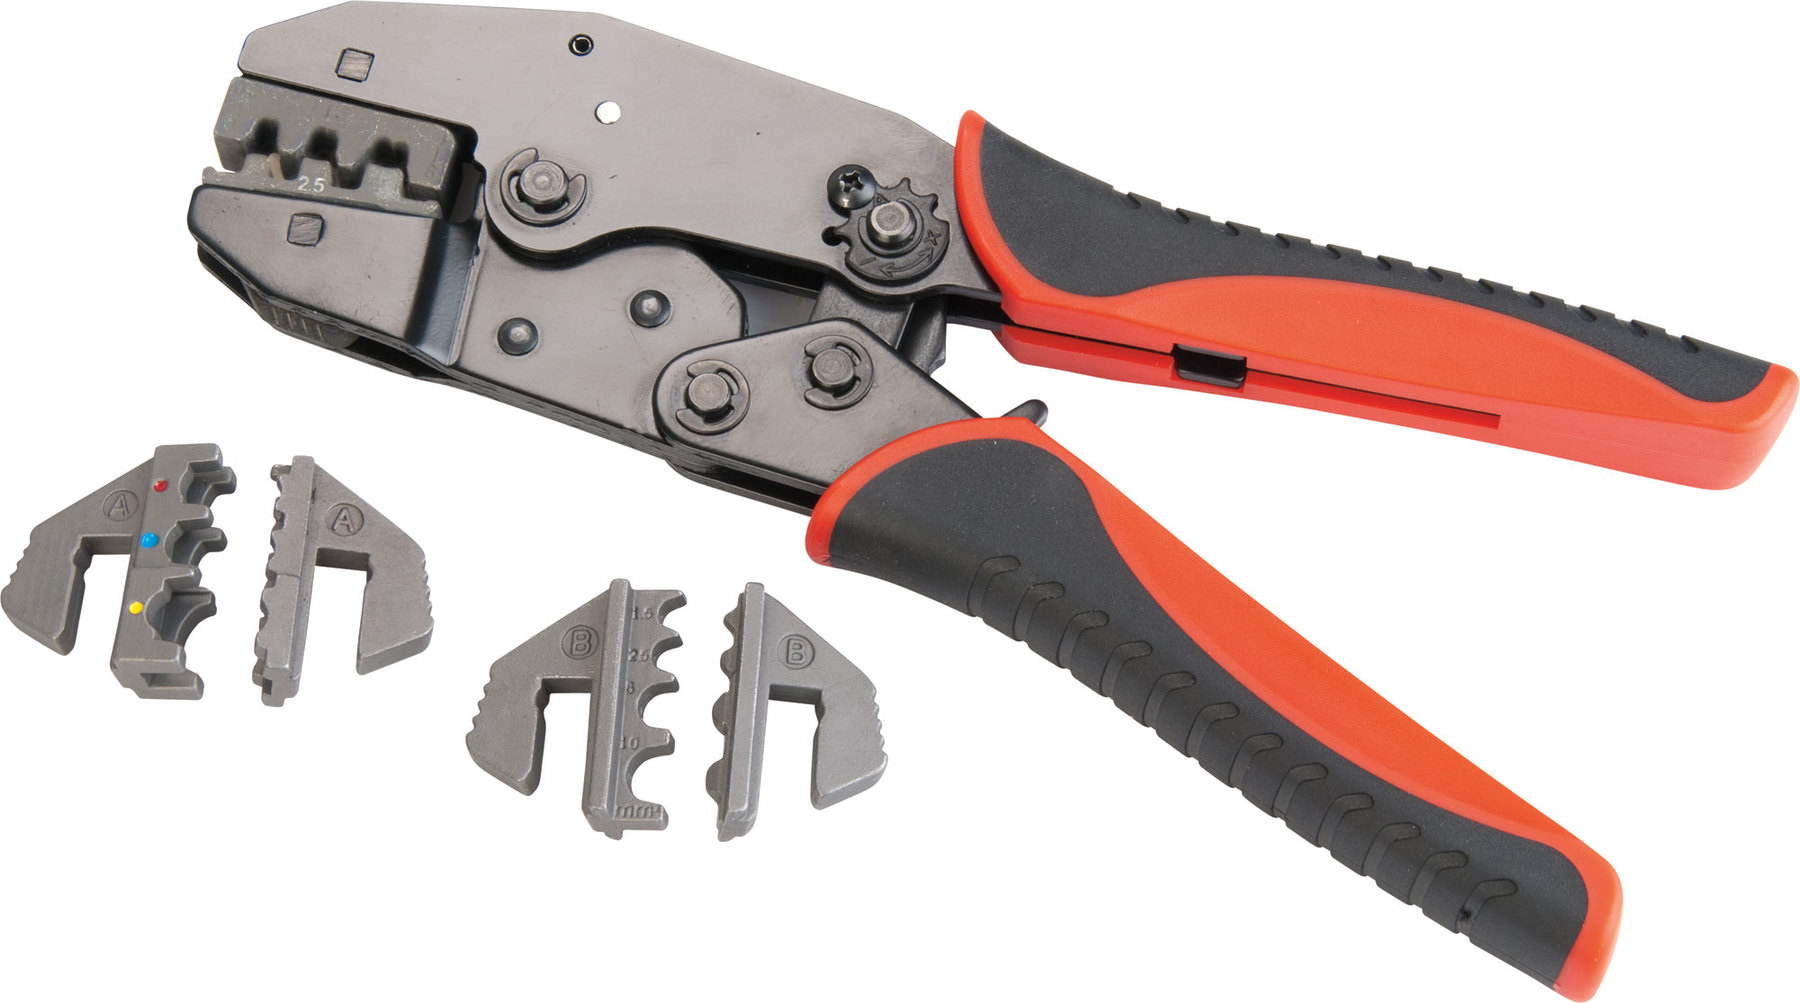 Buy Rothewald Crimper Set With Ratchet Funktion Louis Motorcycle Clothing And Technology